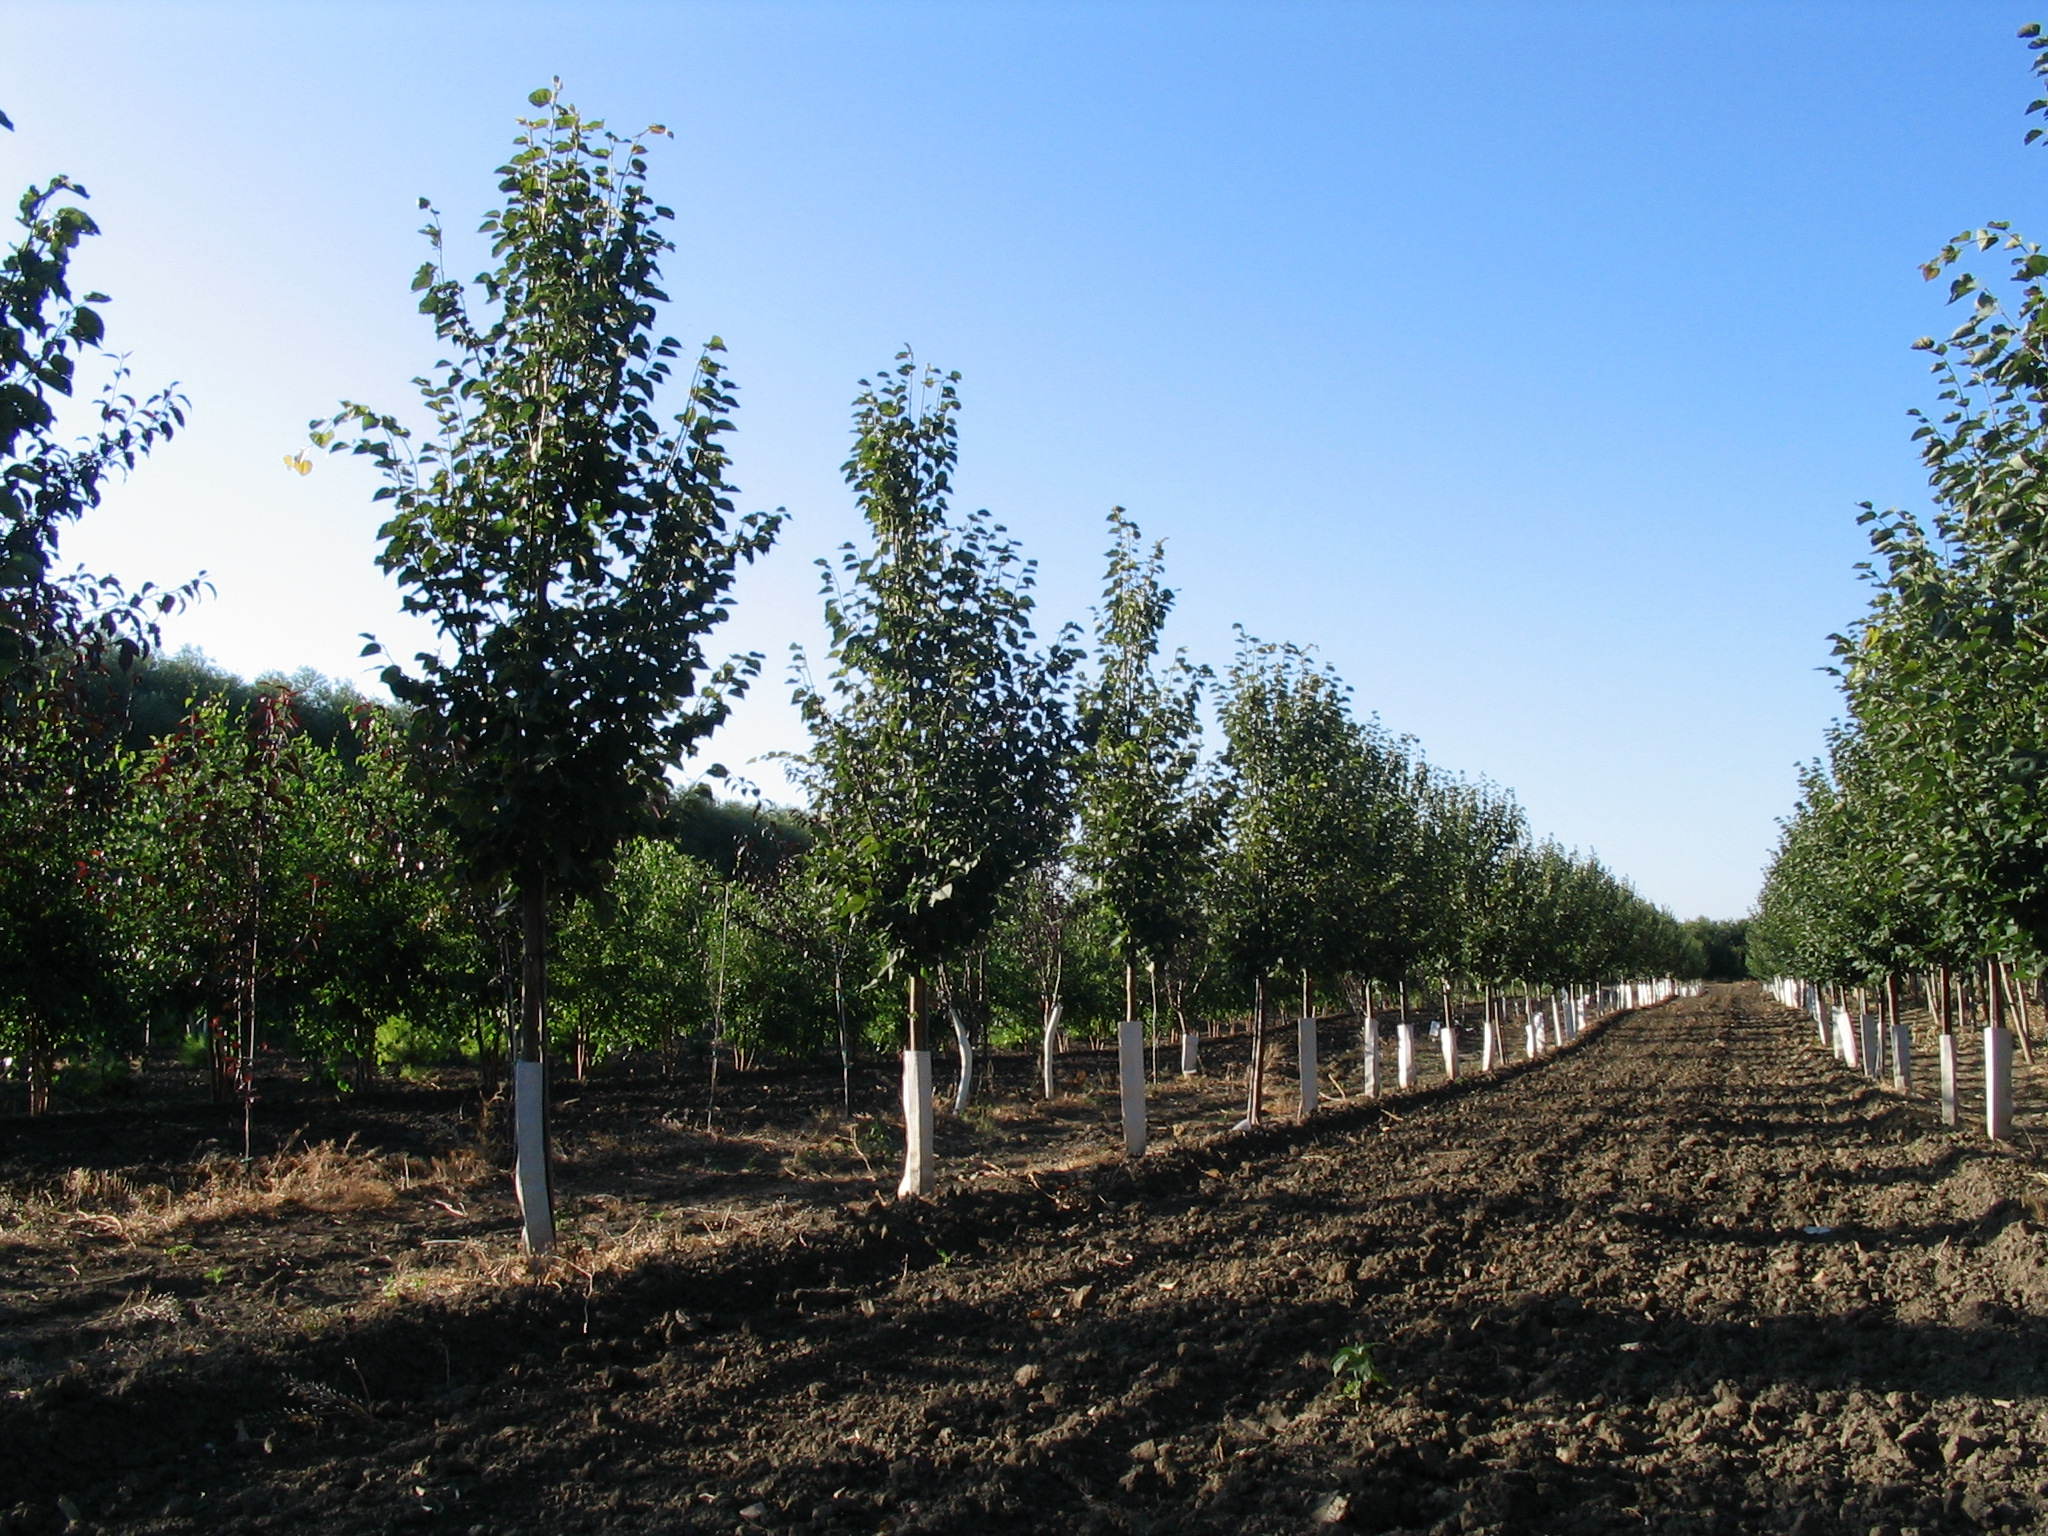 Lakeshore Tree Farms - Your Source for Prairie Hardy Caliper